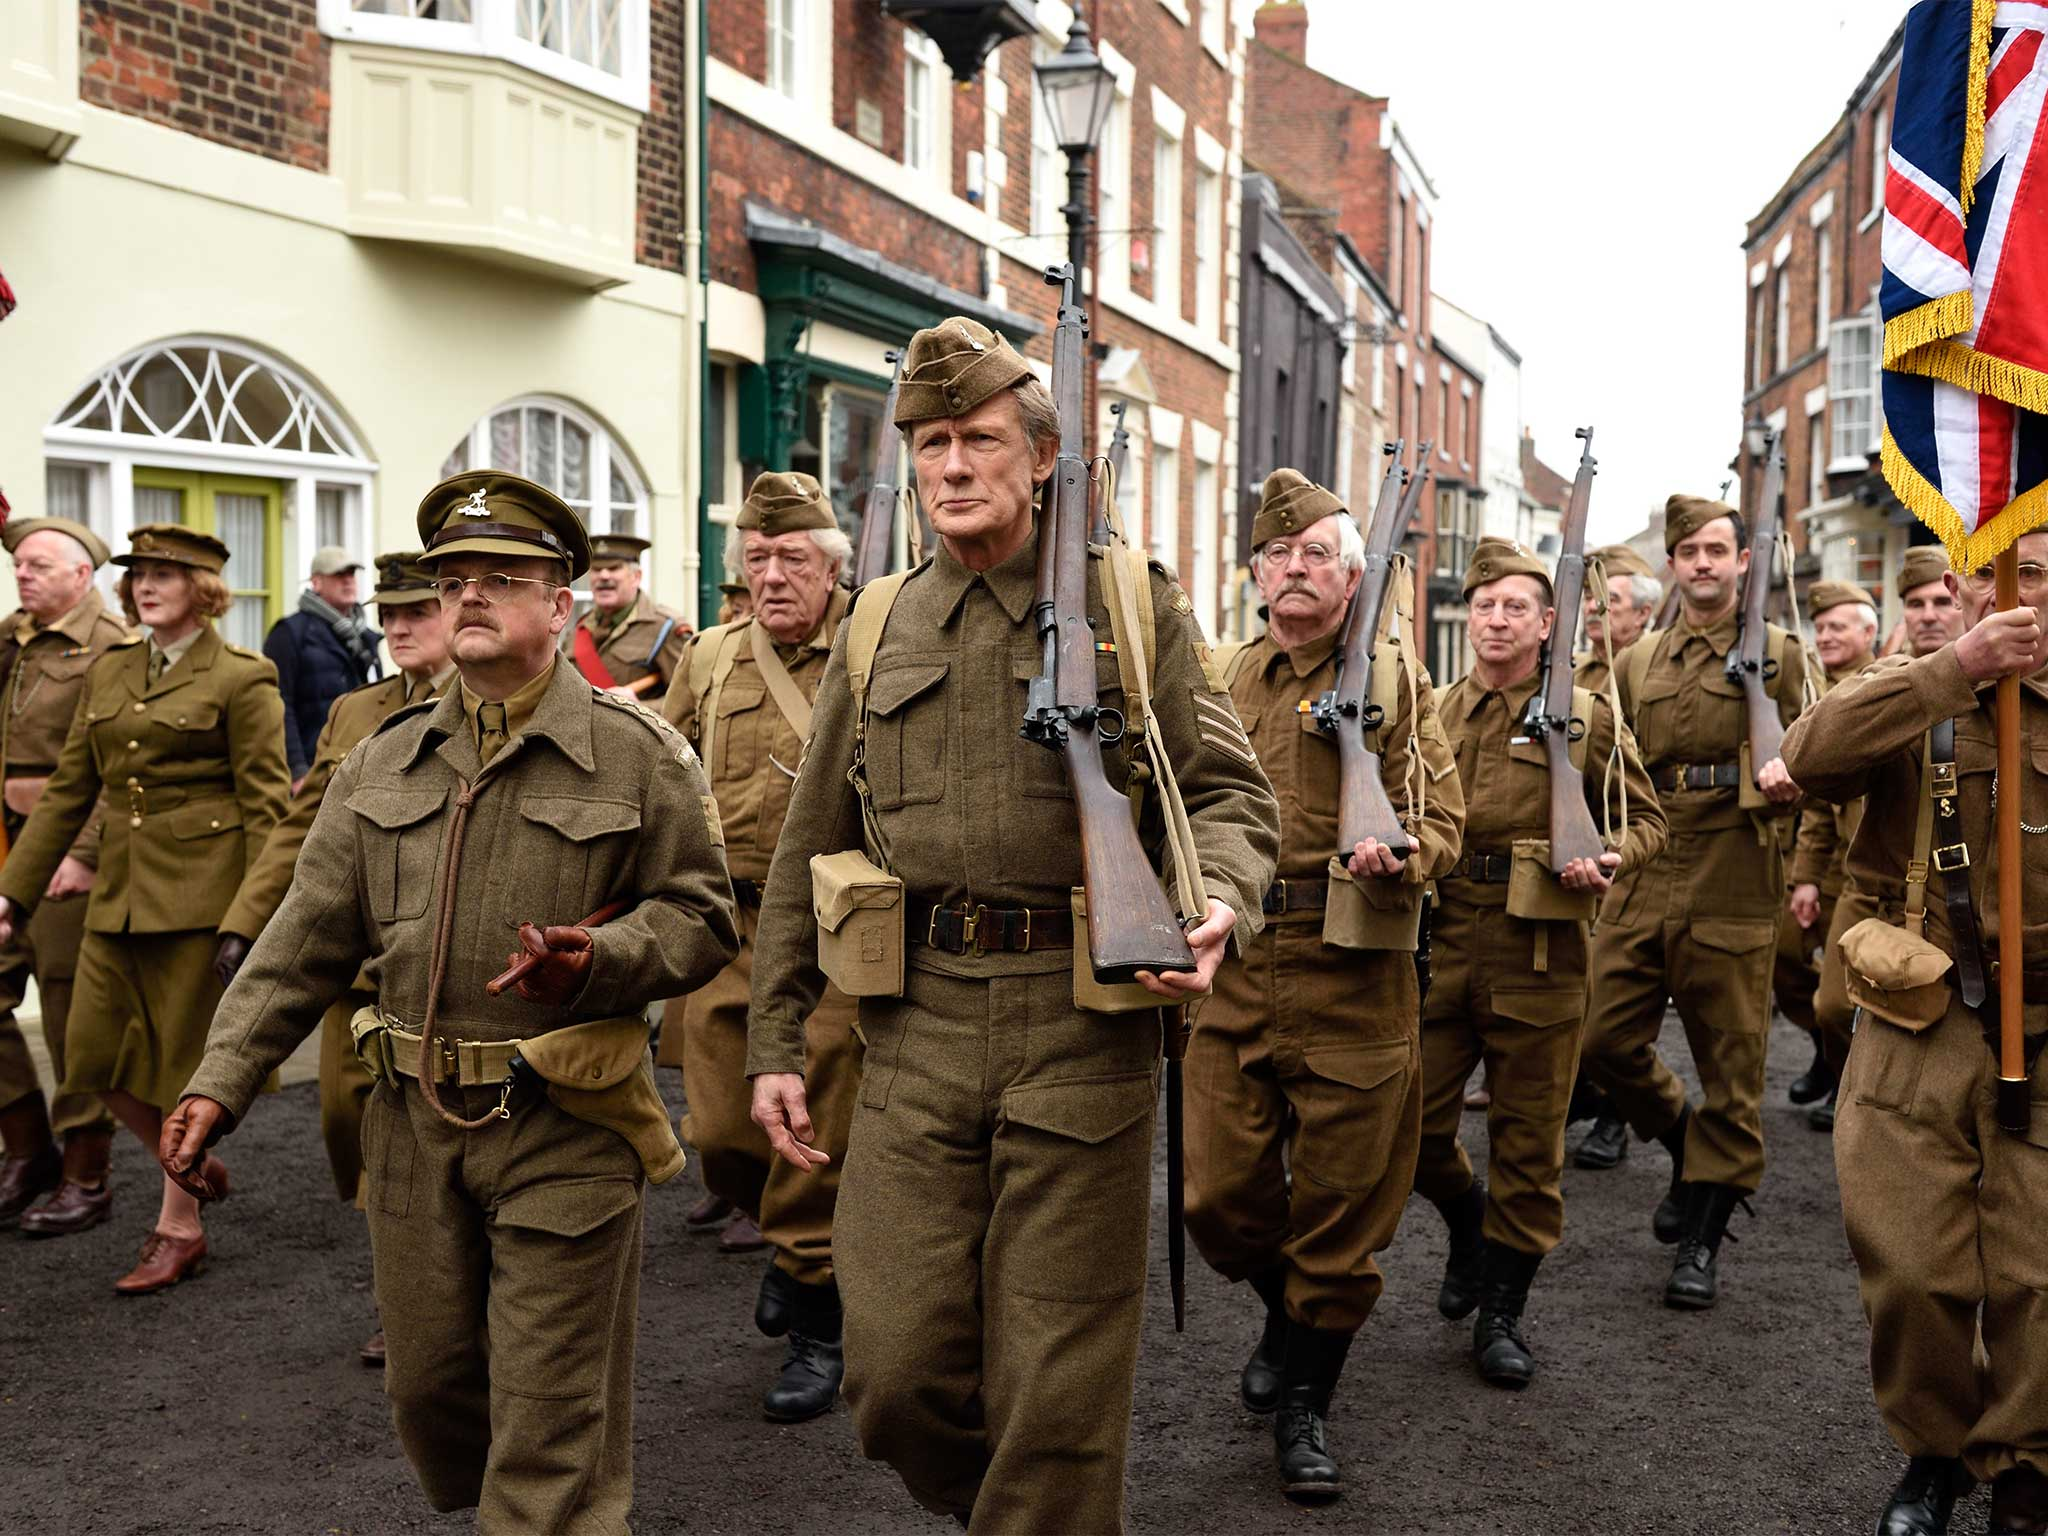 Dad's Army, film review: Who do you think you are kidding ...